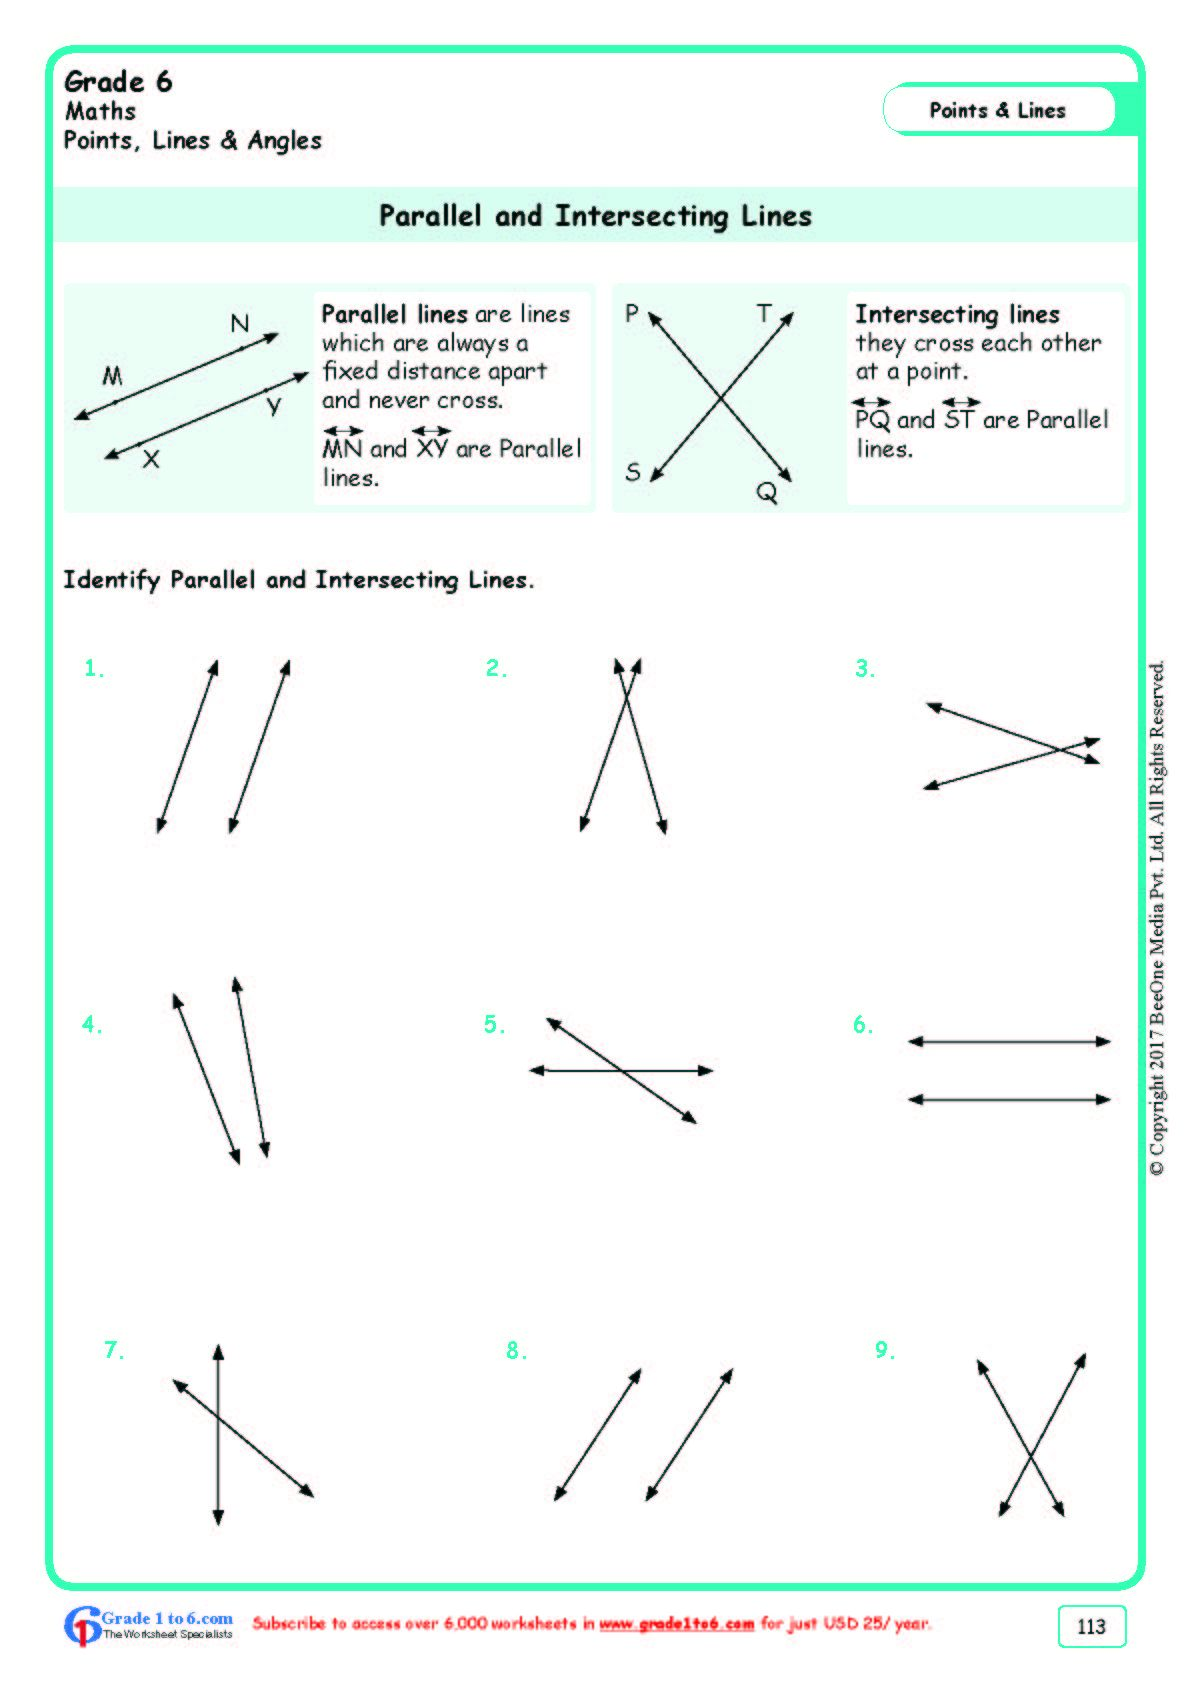 Worksheet Grade 6 Math Parallel And Intersecting Lines In